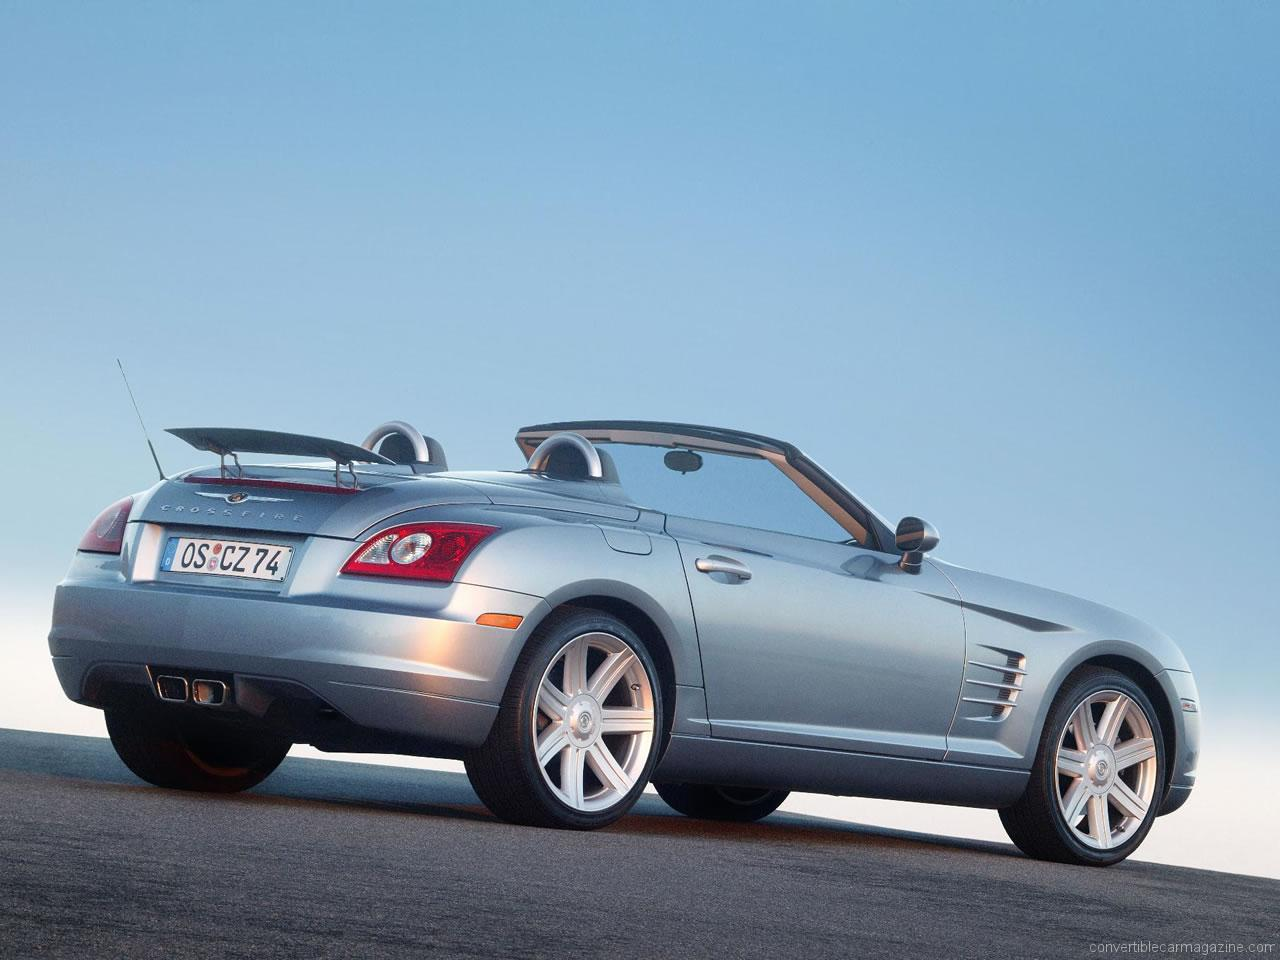 ... Chrysler Crossfire 3.2 V6 Roadster Chrysler Crossfire SRT-6 Roadster